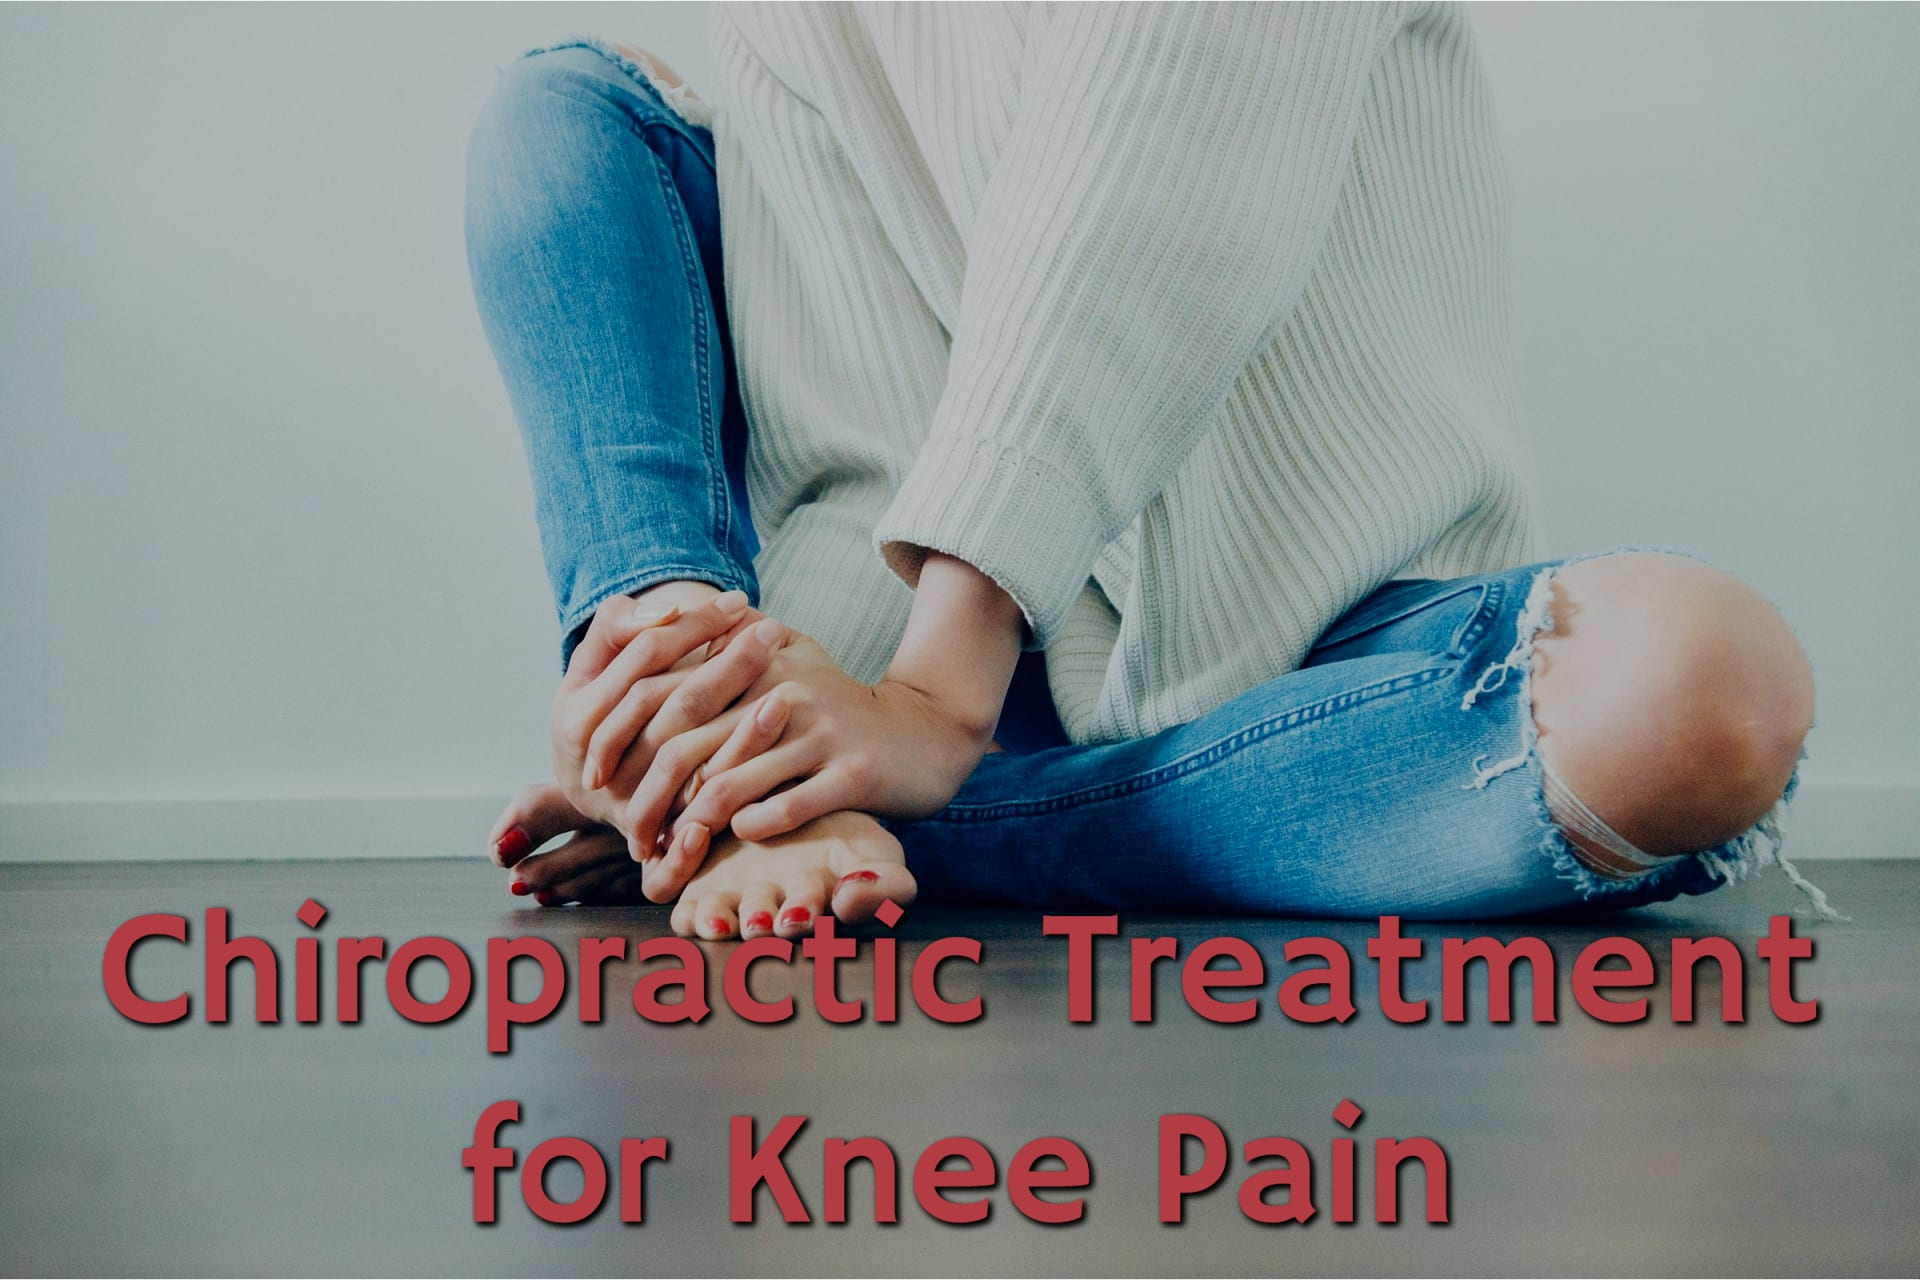 Do Chiropractors Help with Knee Pain?